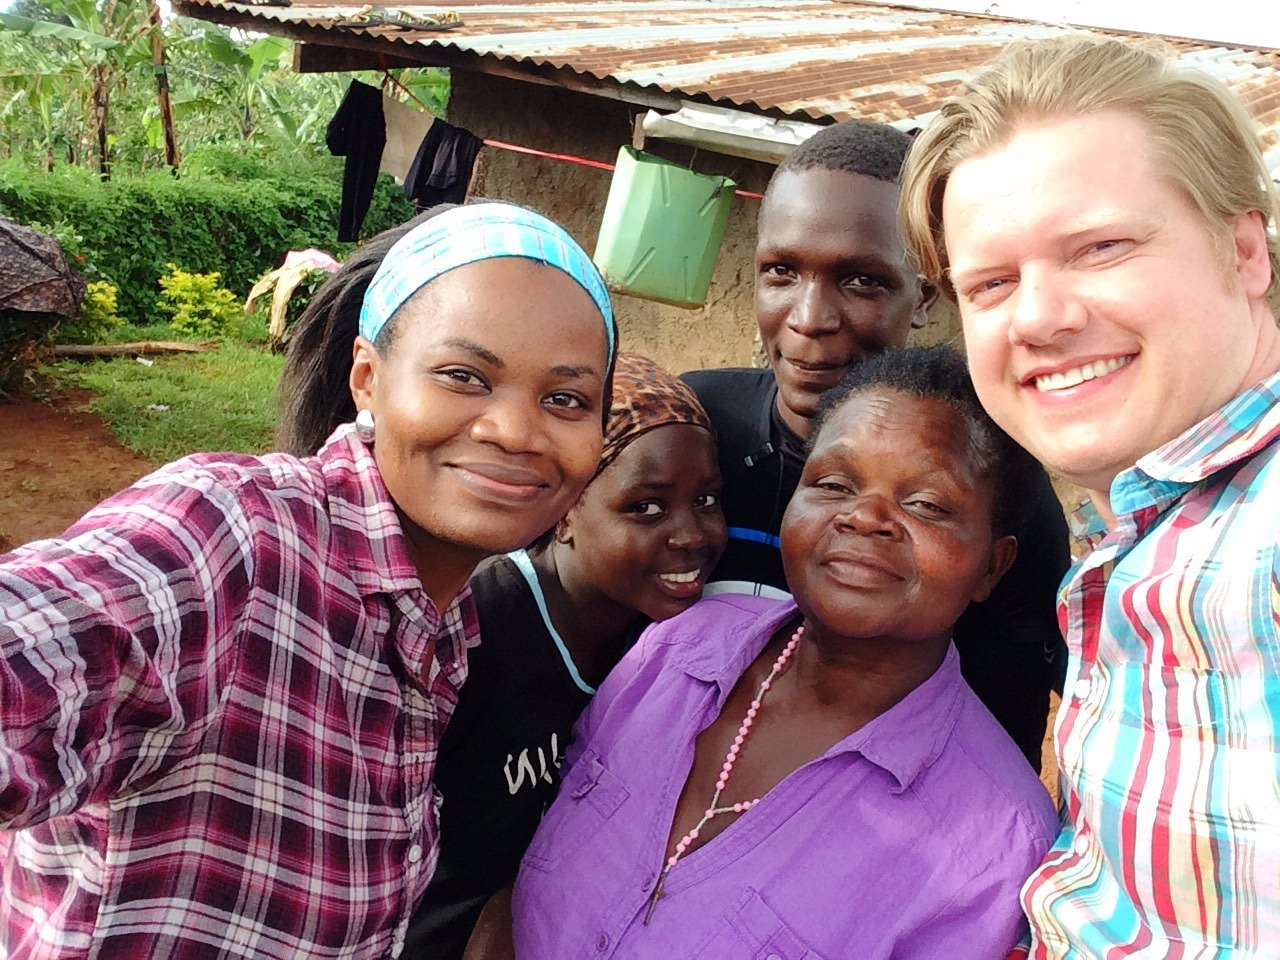 #BrewingBetter is more than just introducing better coffee brewing methods at our coffee shops. That was, of course, the place to start and ultimately the whole project relies on customers falling in love with better and better coffee.  But behind this is a new journey we have begun to positively impact the lives of Ugandan coffee farmers.  Women like Mama Alex (pictured above) who lives in a village near Sipi Falls, grow coffee for survival.  We dream of entering into long term relationships with such farmers to help them develop their coffee and improve both crop yields and quality.  Can Mama Alex move from survival farming to a truly thriving enterprise which creates a bright future for herself and her children?  That's the plan.